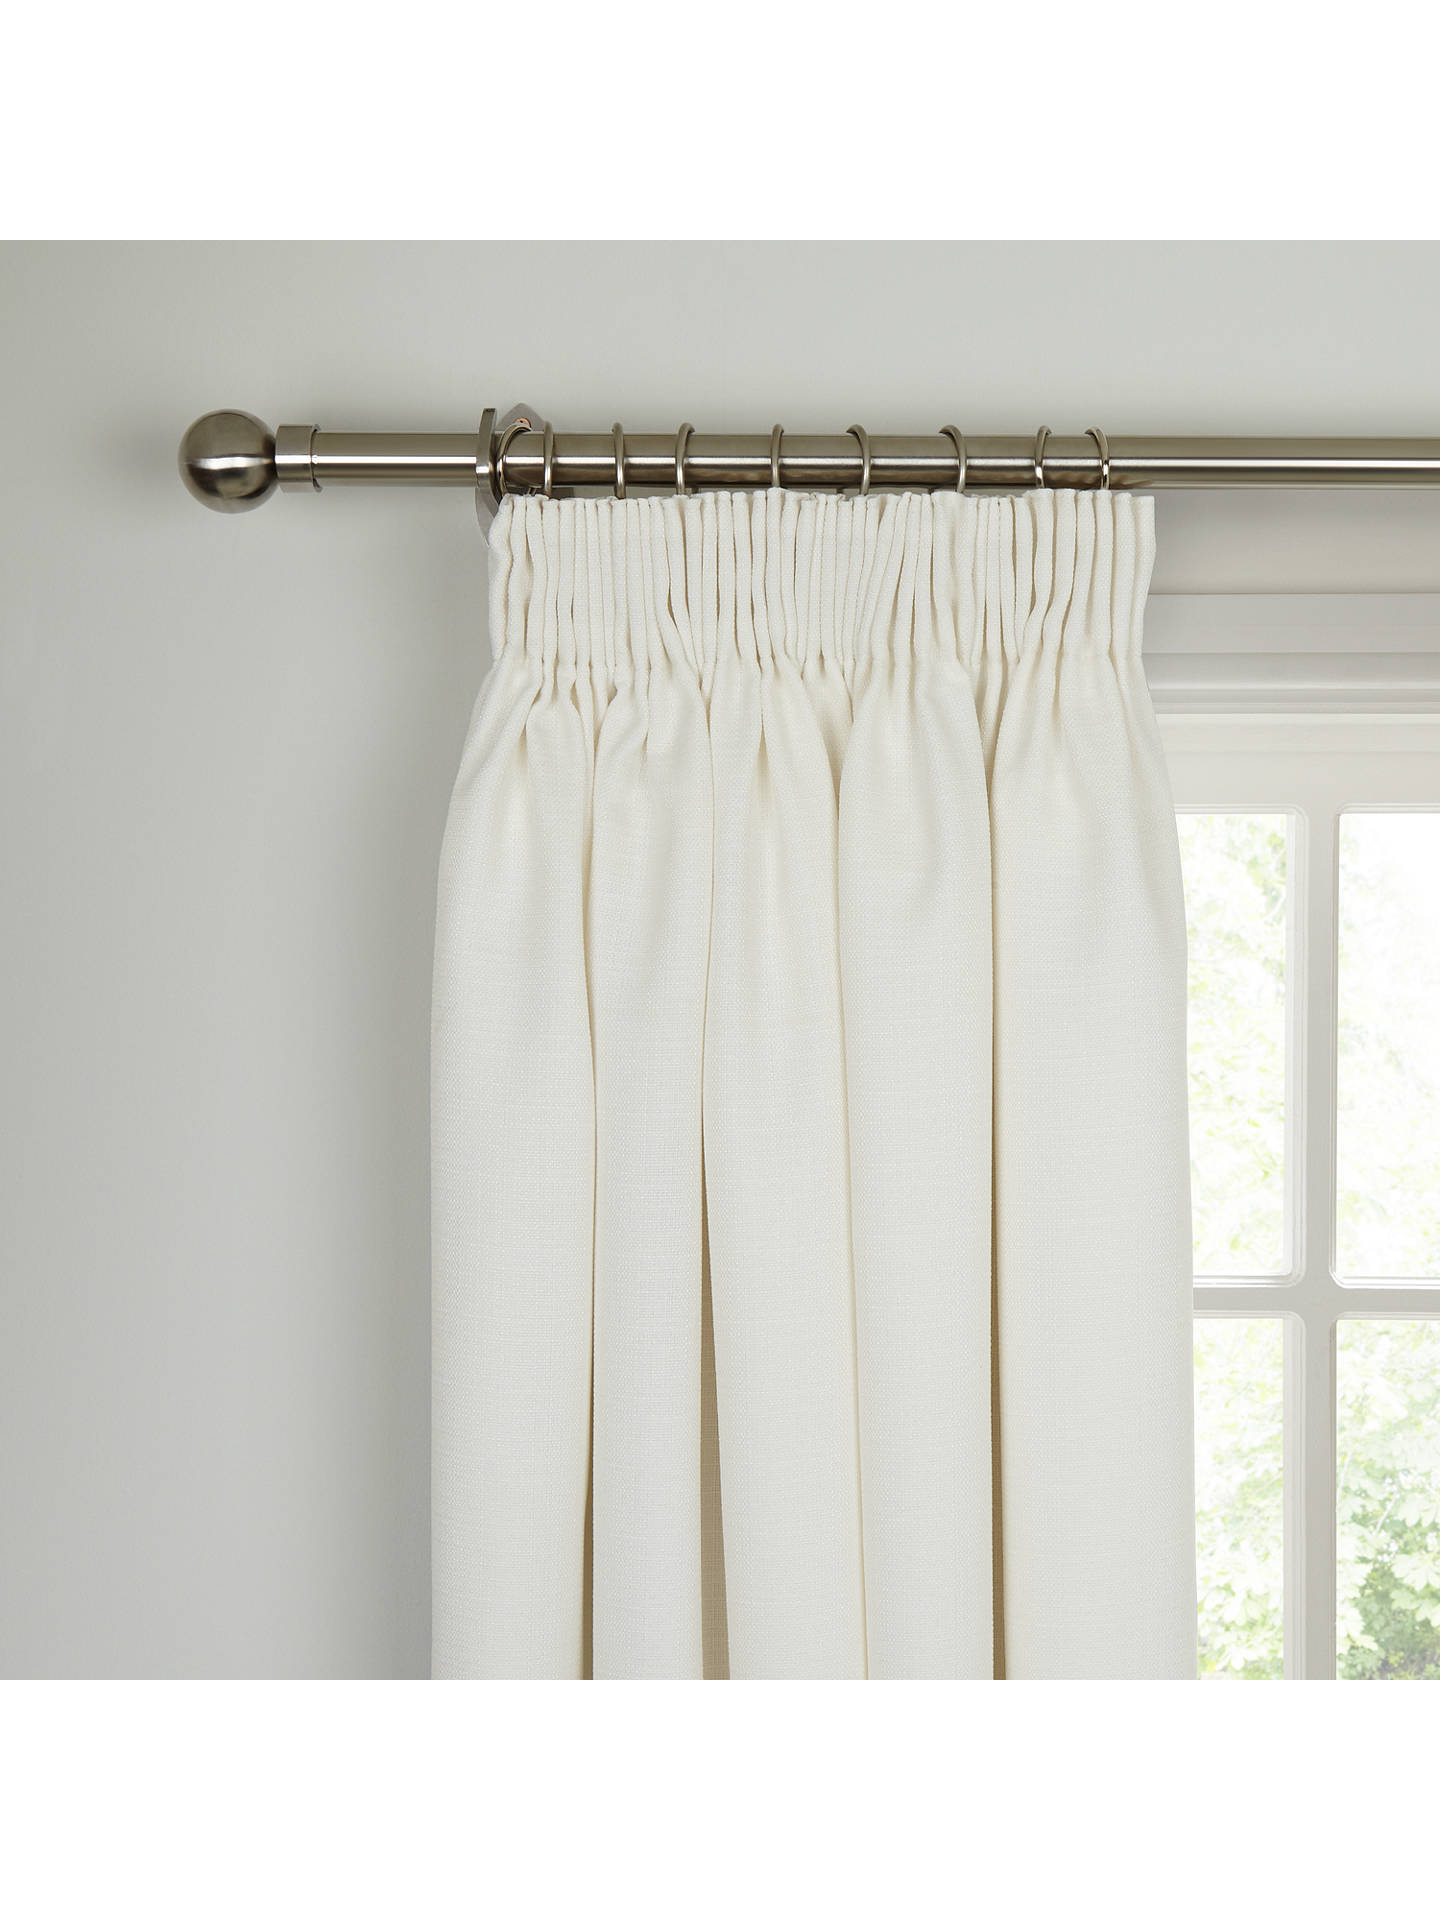 Buy John Lewis & Partners Barathea Pair Blackout Lined Pencil Pleat Curtains, Oyster, W167 x Drop 274cm Online at johnlewis.com